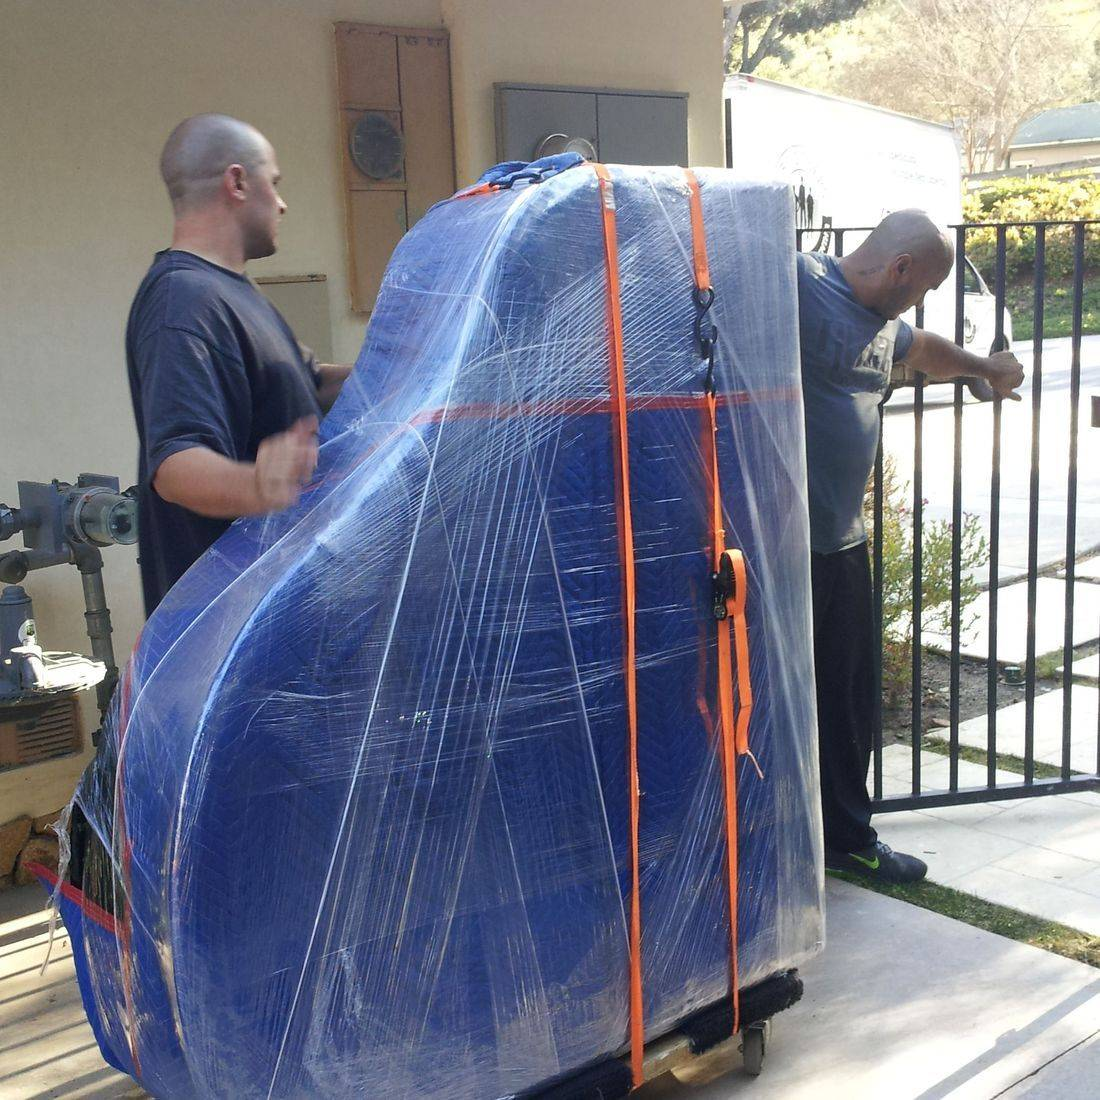 Piano movers in Orange County baby grand piano mover Single item moving